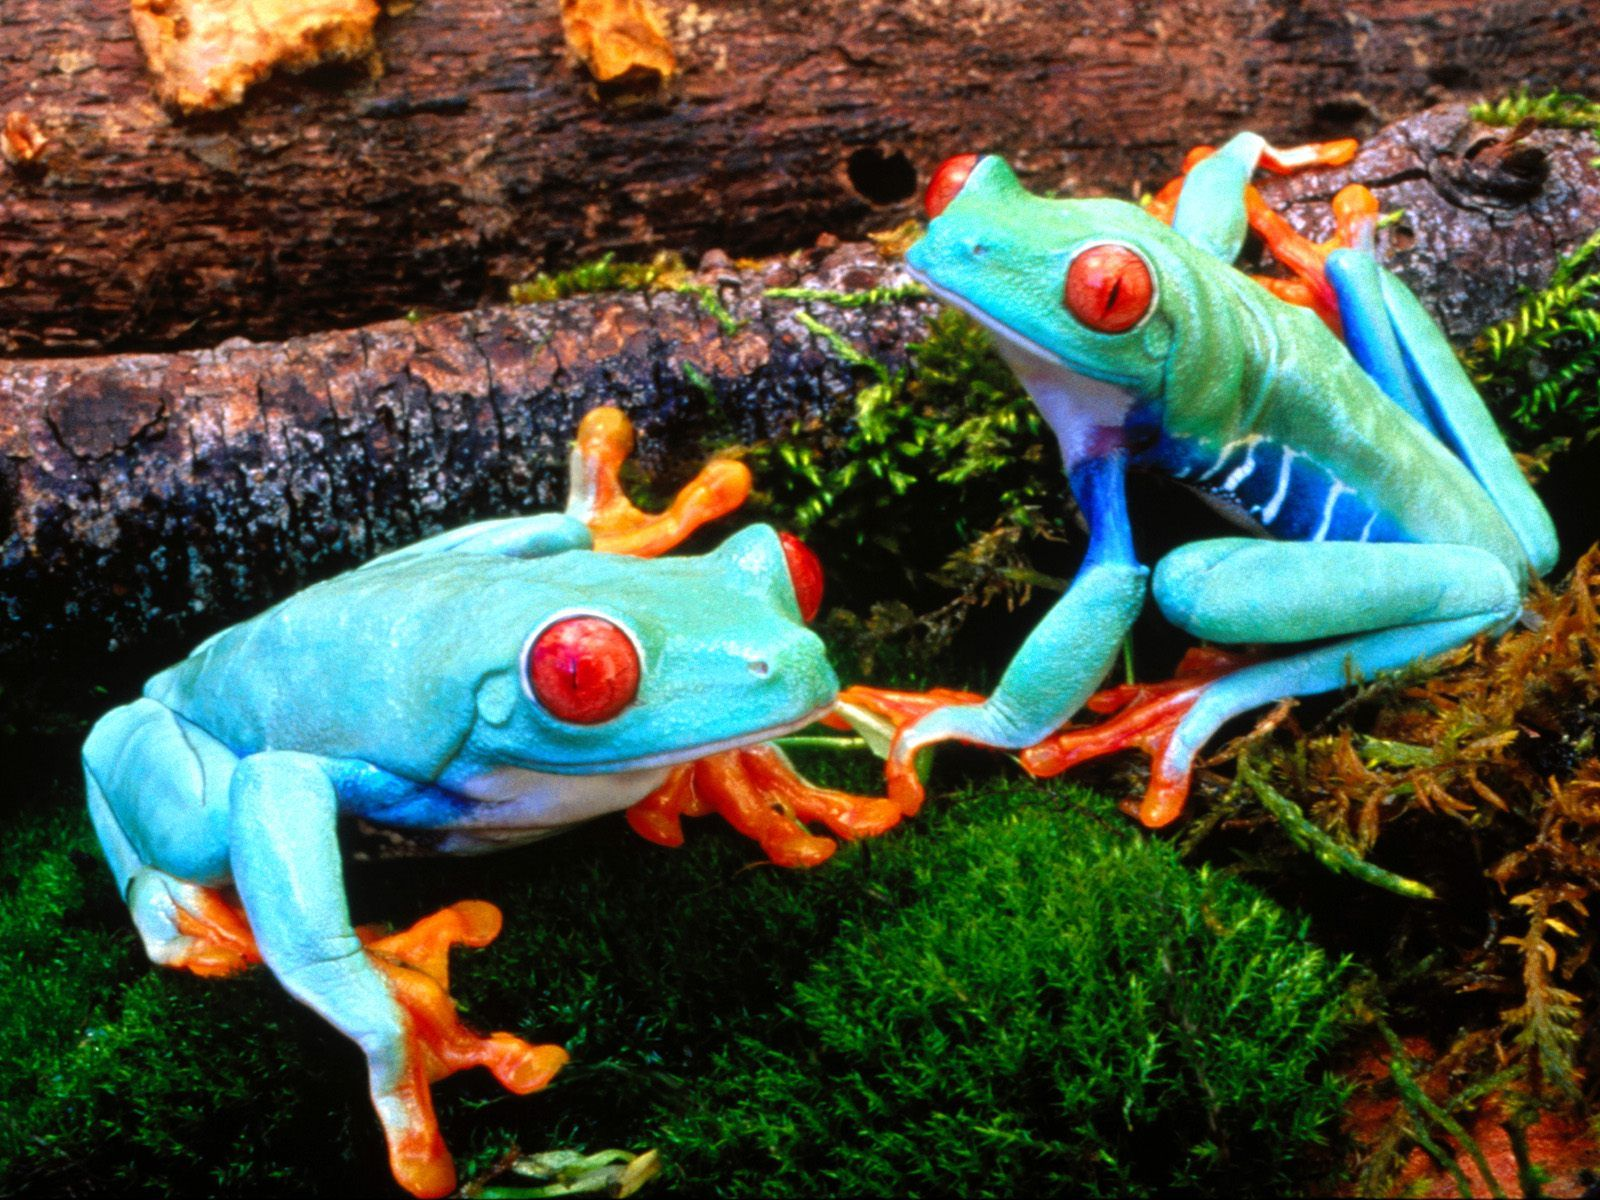 Poison Dart Frog Pictures - National Geographic | Frogs | Pinterest ...